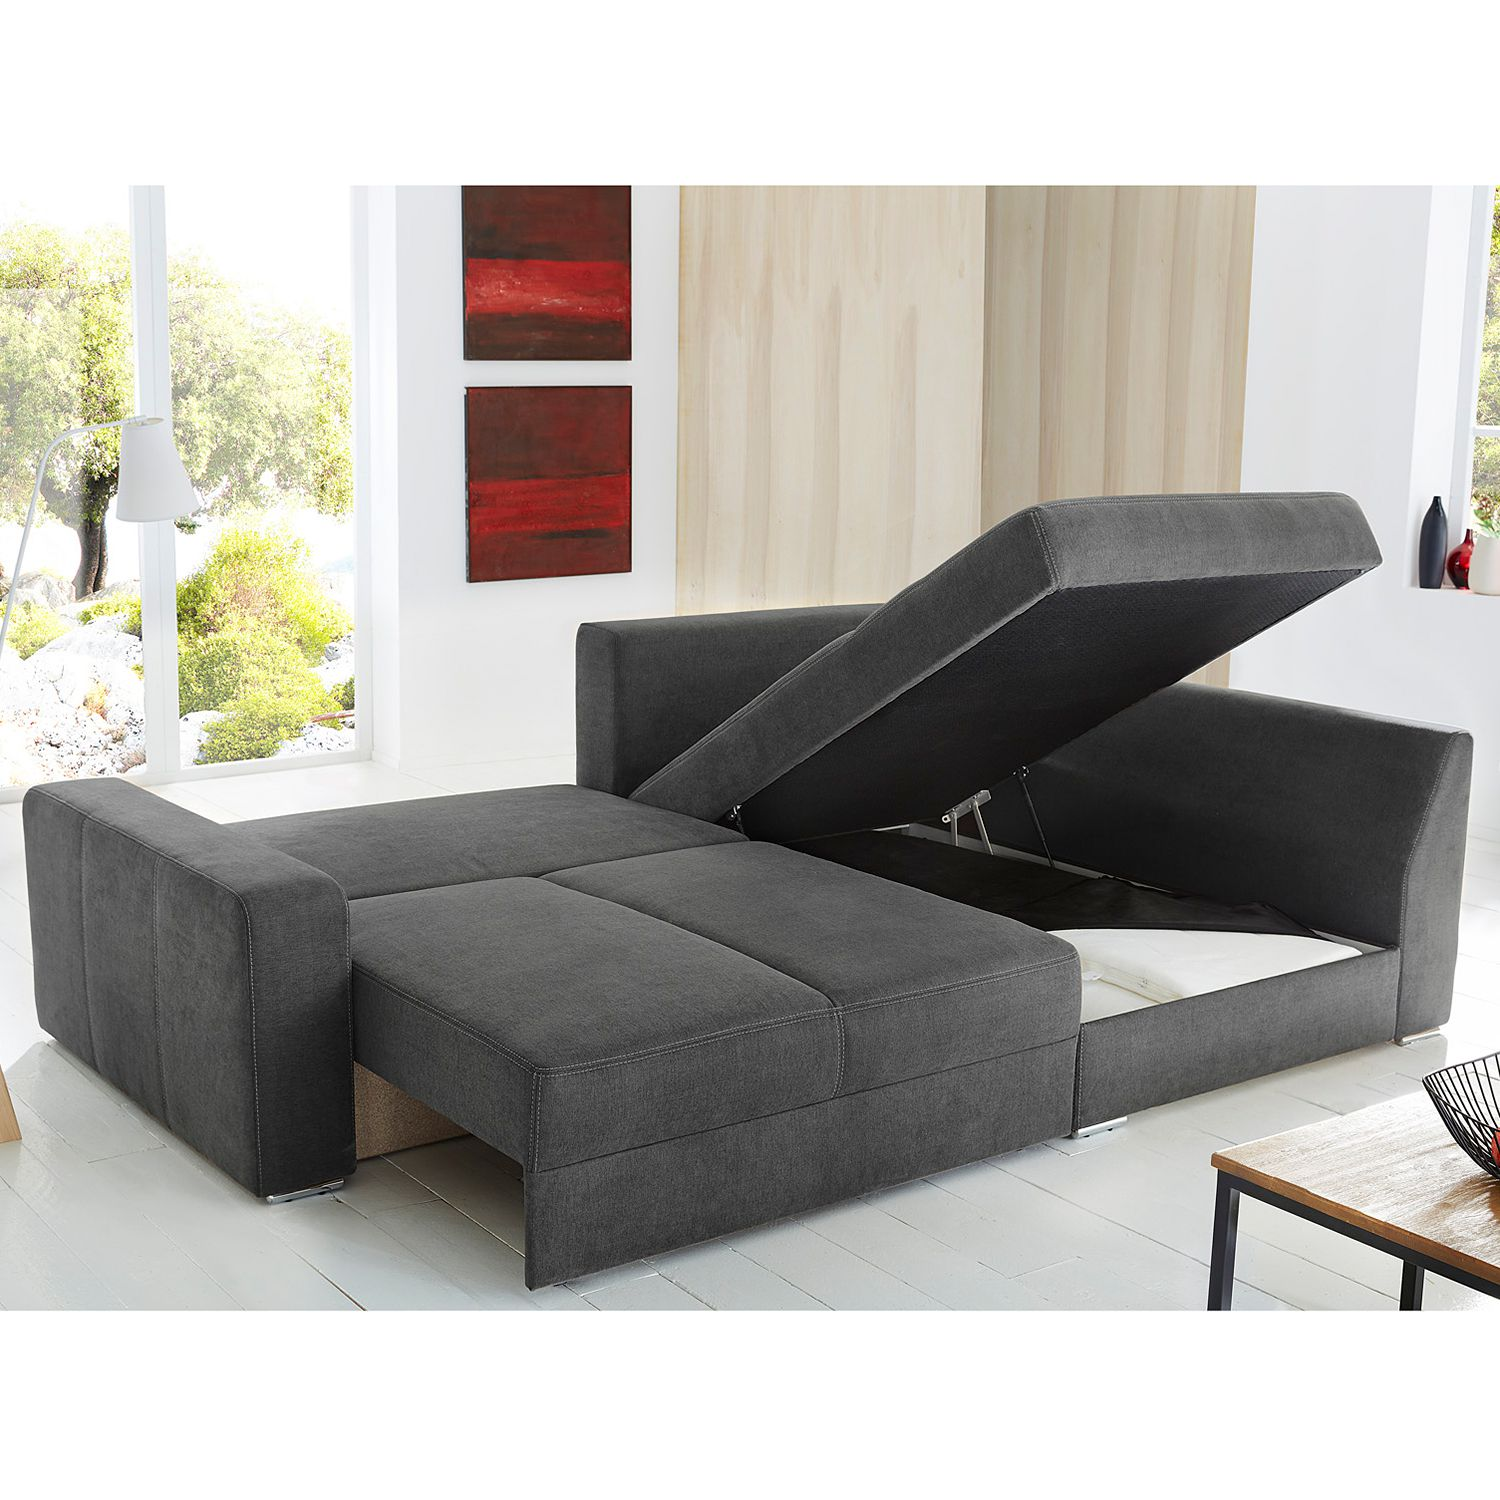 ecksofa 220 breit latest finest free fabulous sofa ramano sofa ramano sofa ramano with sofa. Black Bedroom Furniture Sets. Home Design Ideas